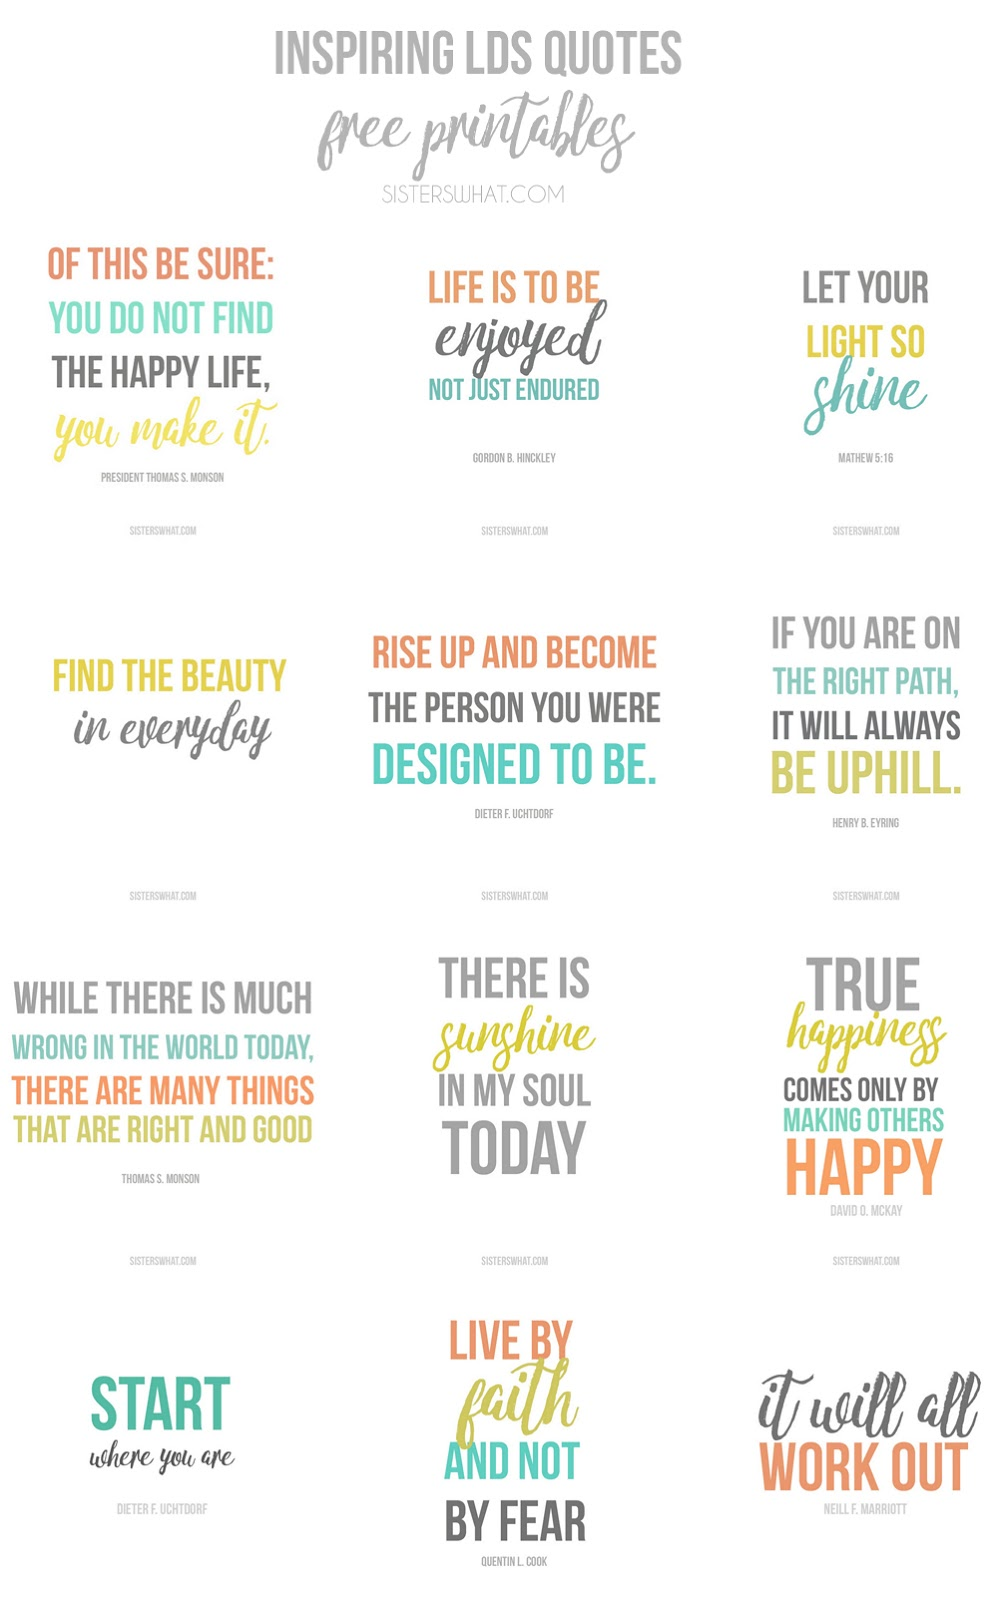 photograph about Quotes Printable identified as Inspirational Prices Absolutely free Printables - Sisters, What!